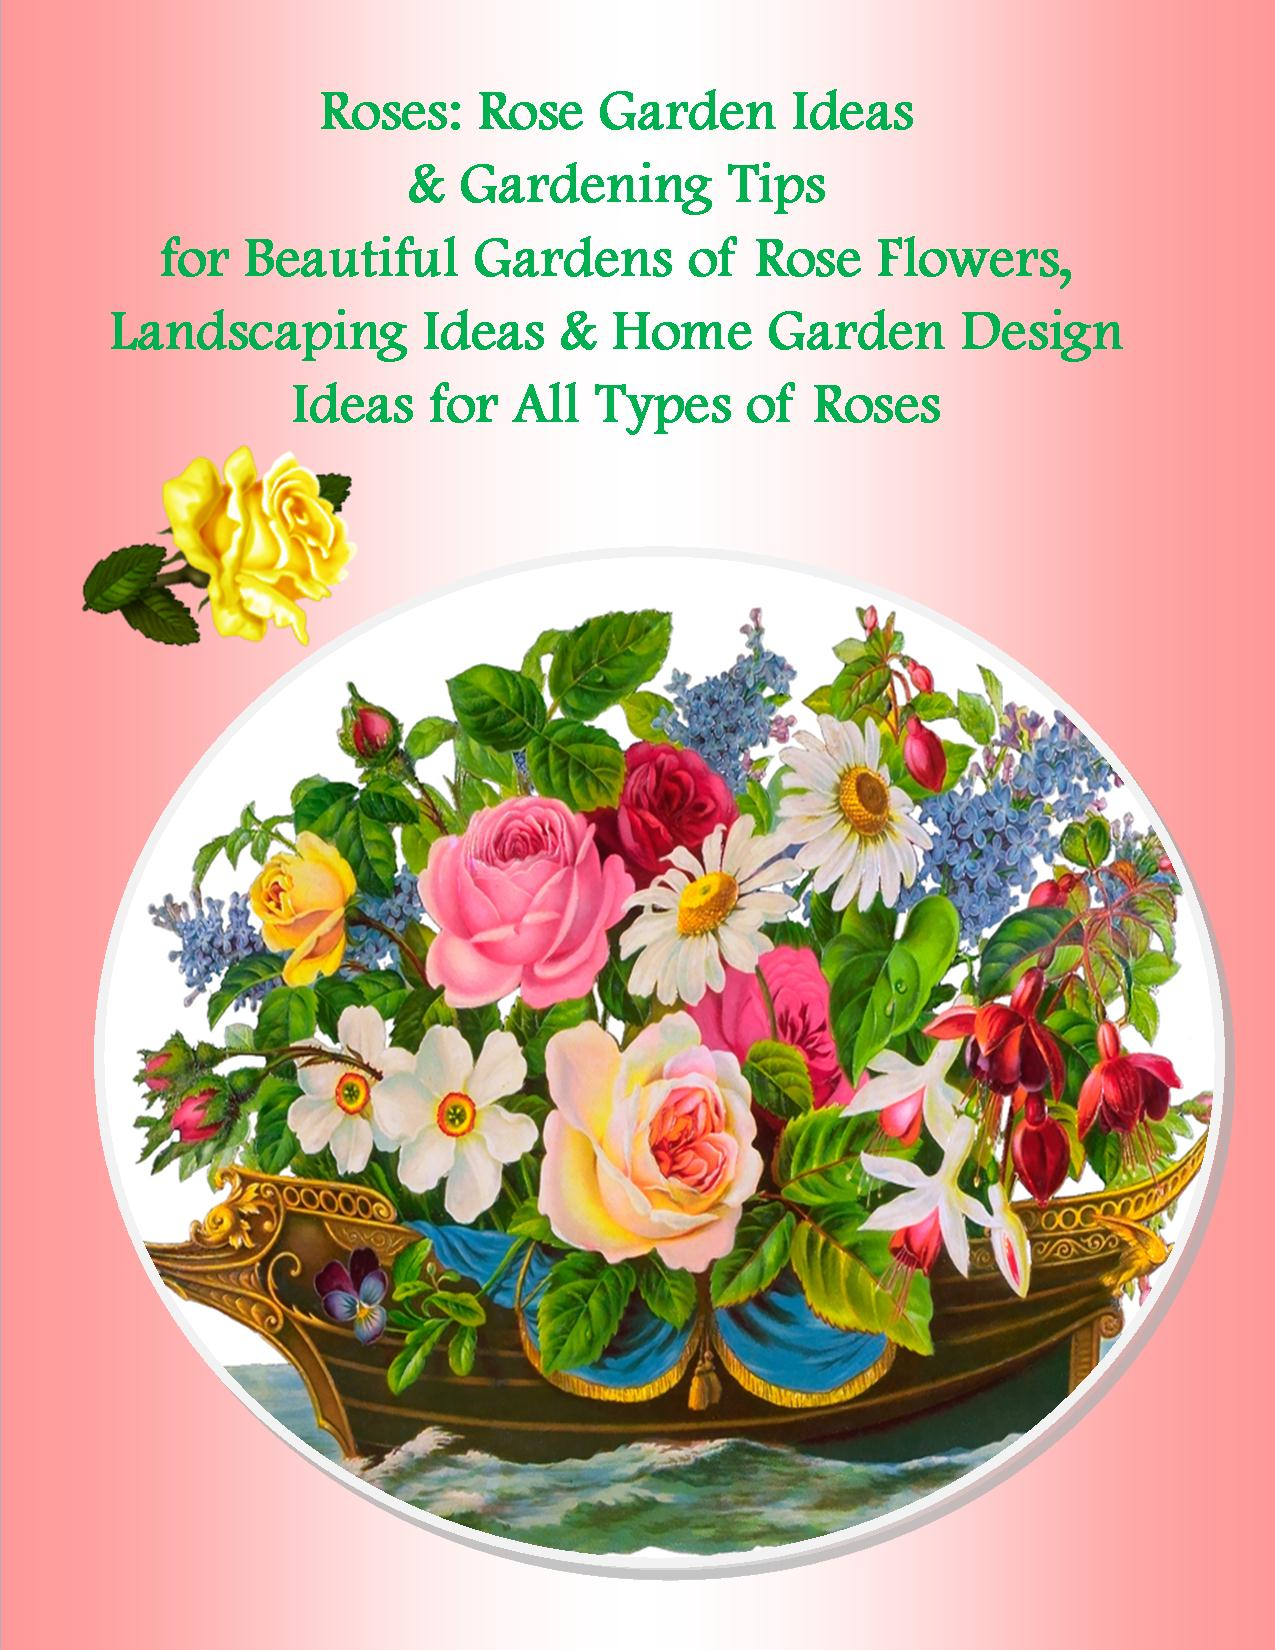 Roses: Rose Garden Ideas & Gardening Tips for Beautiful Gardens of ...